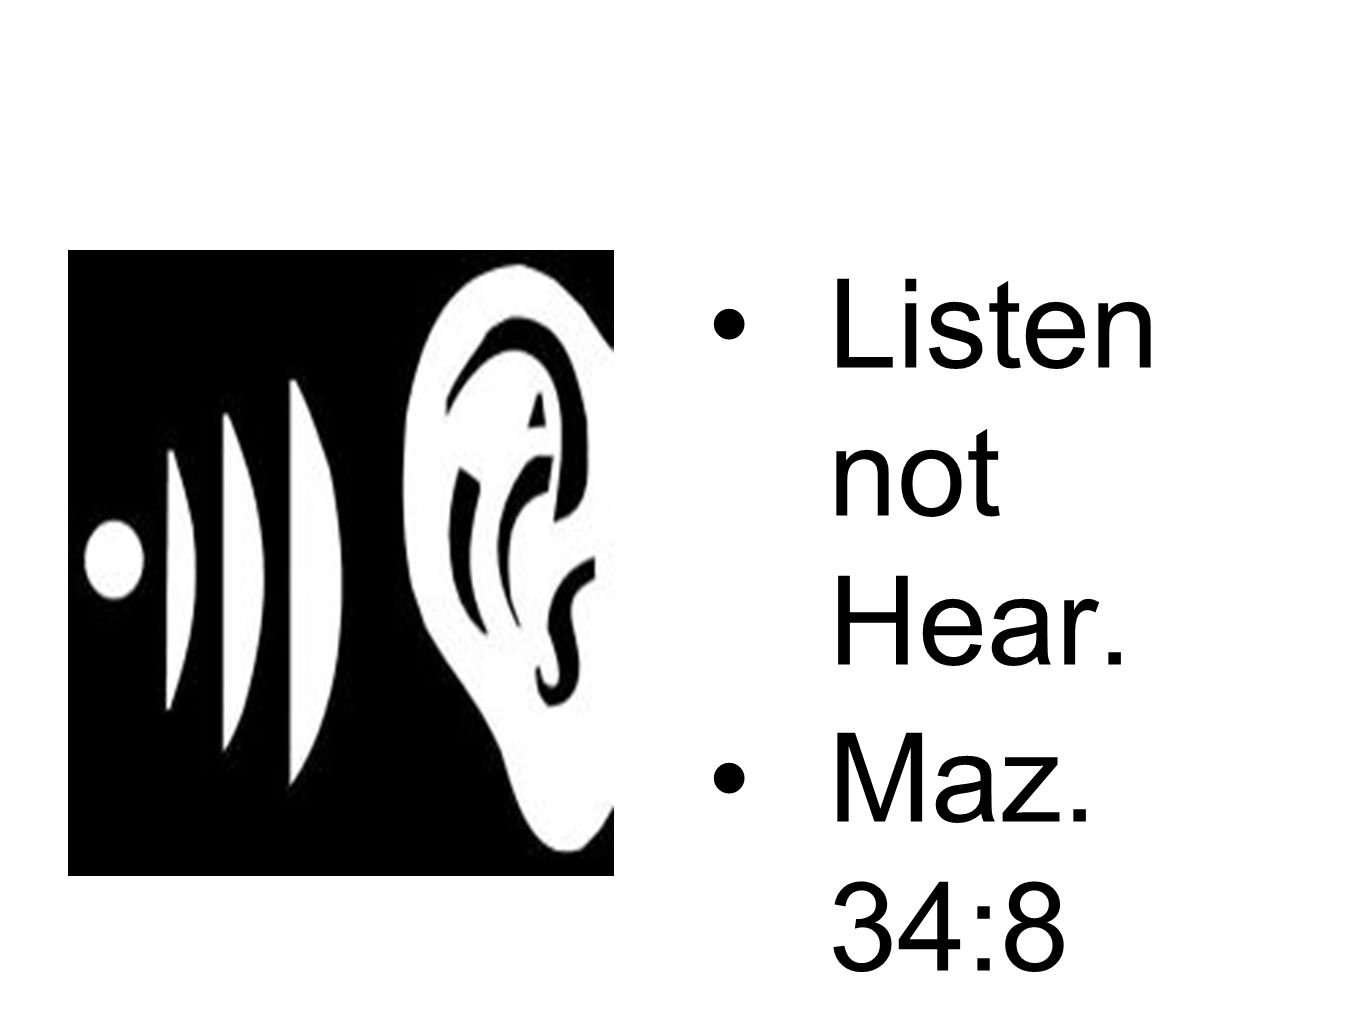 Listen not Hear. Maz. 34:8